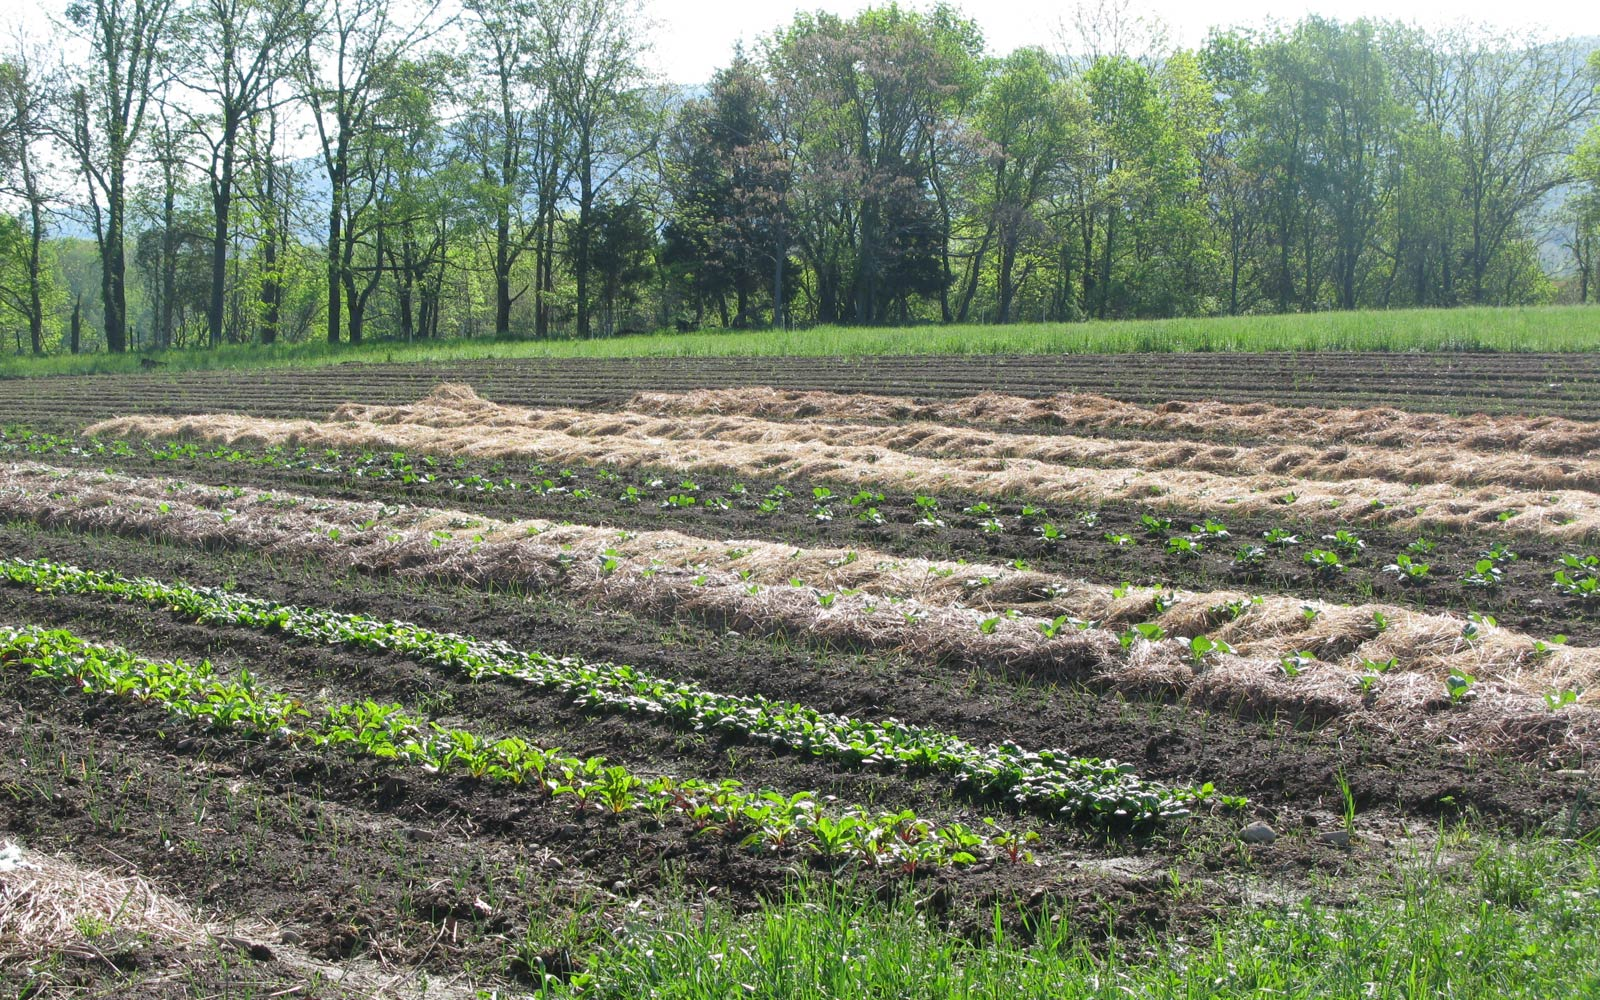 vernon valley farm - vegetable field sprouting